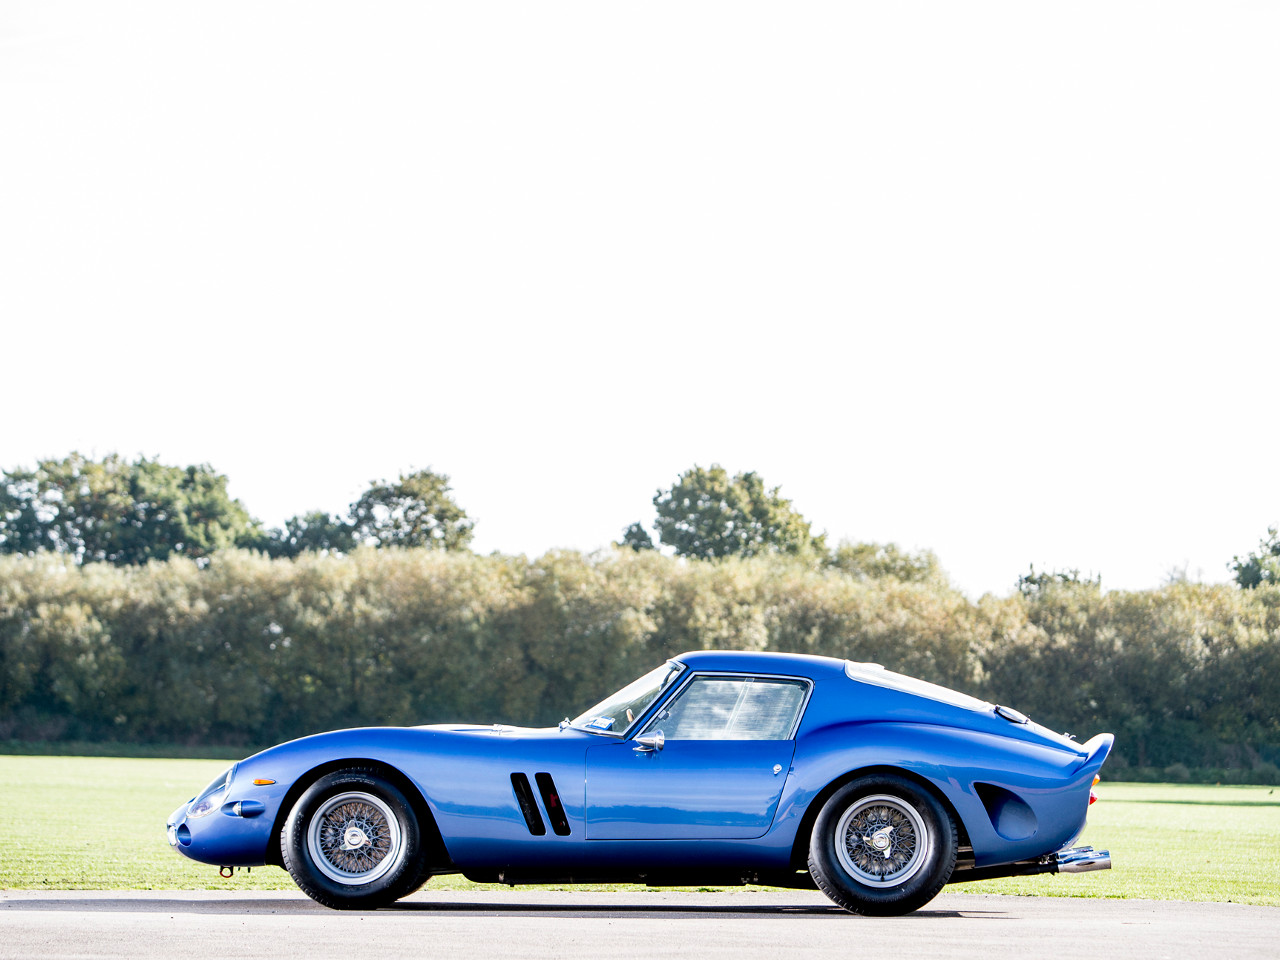 1962 ferrari 250 gto s n 3387gt for sale at 56 400 000 gtspirit. Black Bedroom Furniture Sets. Home Design Ideas